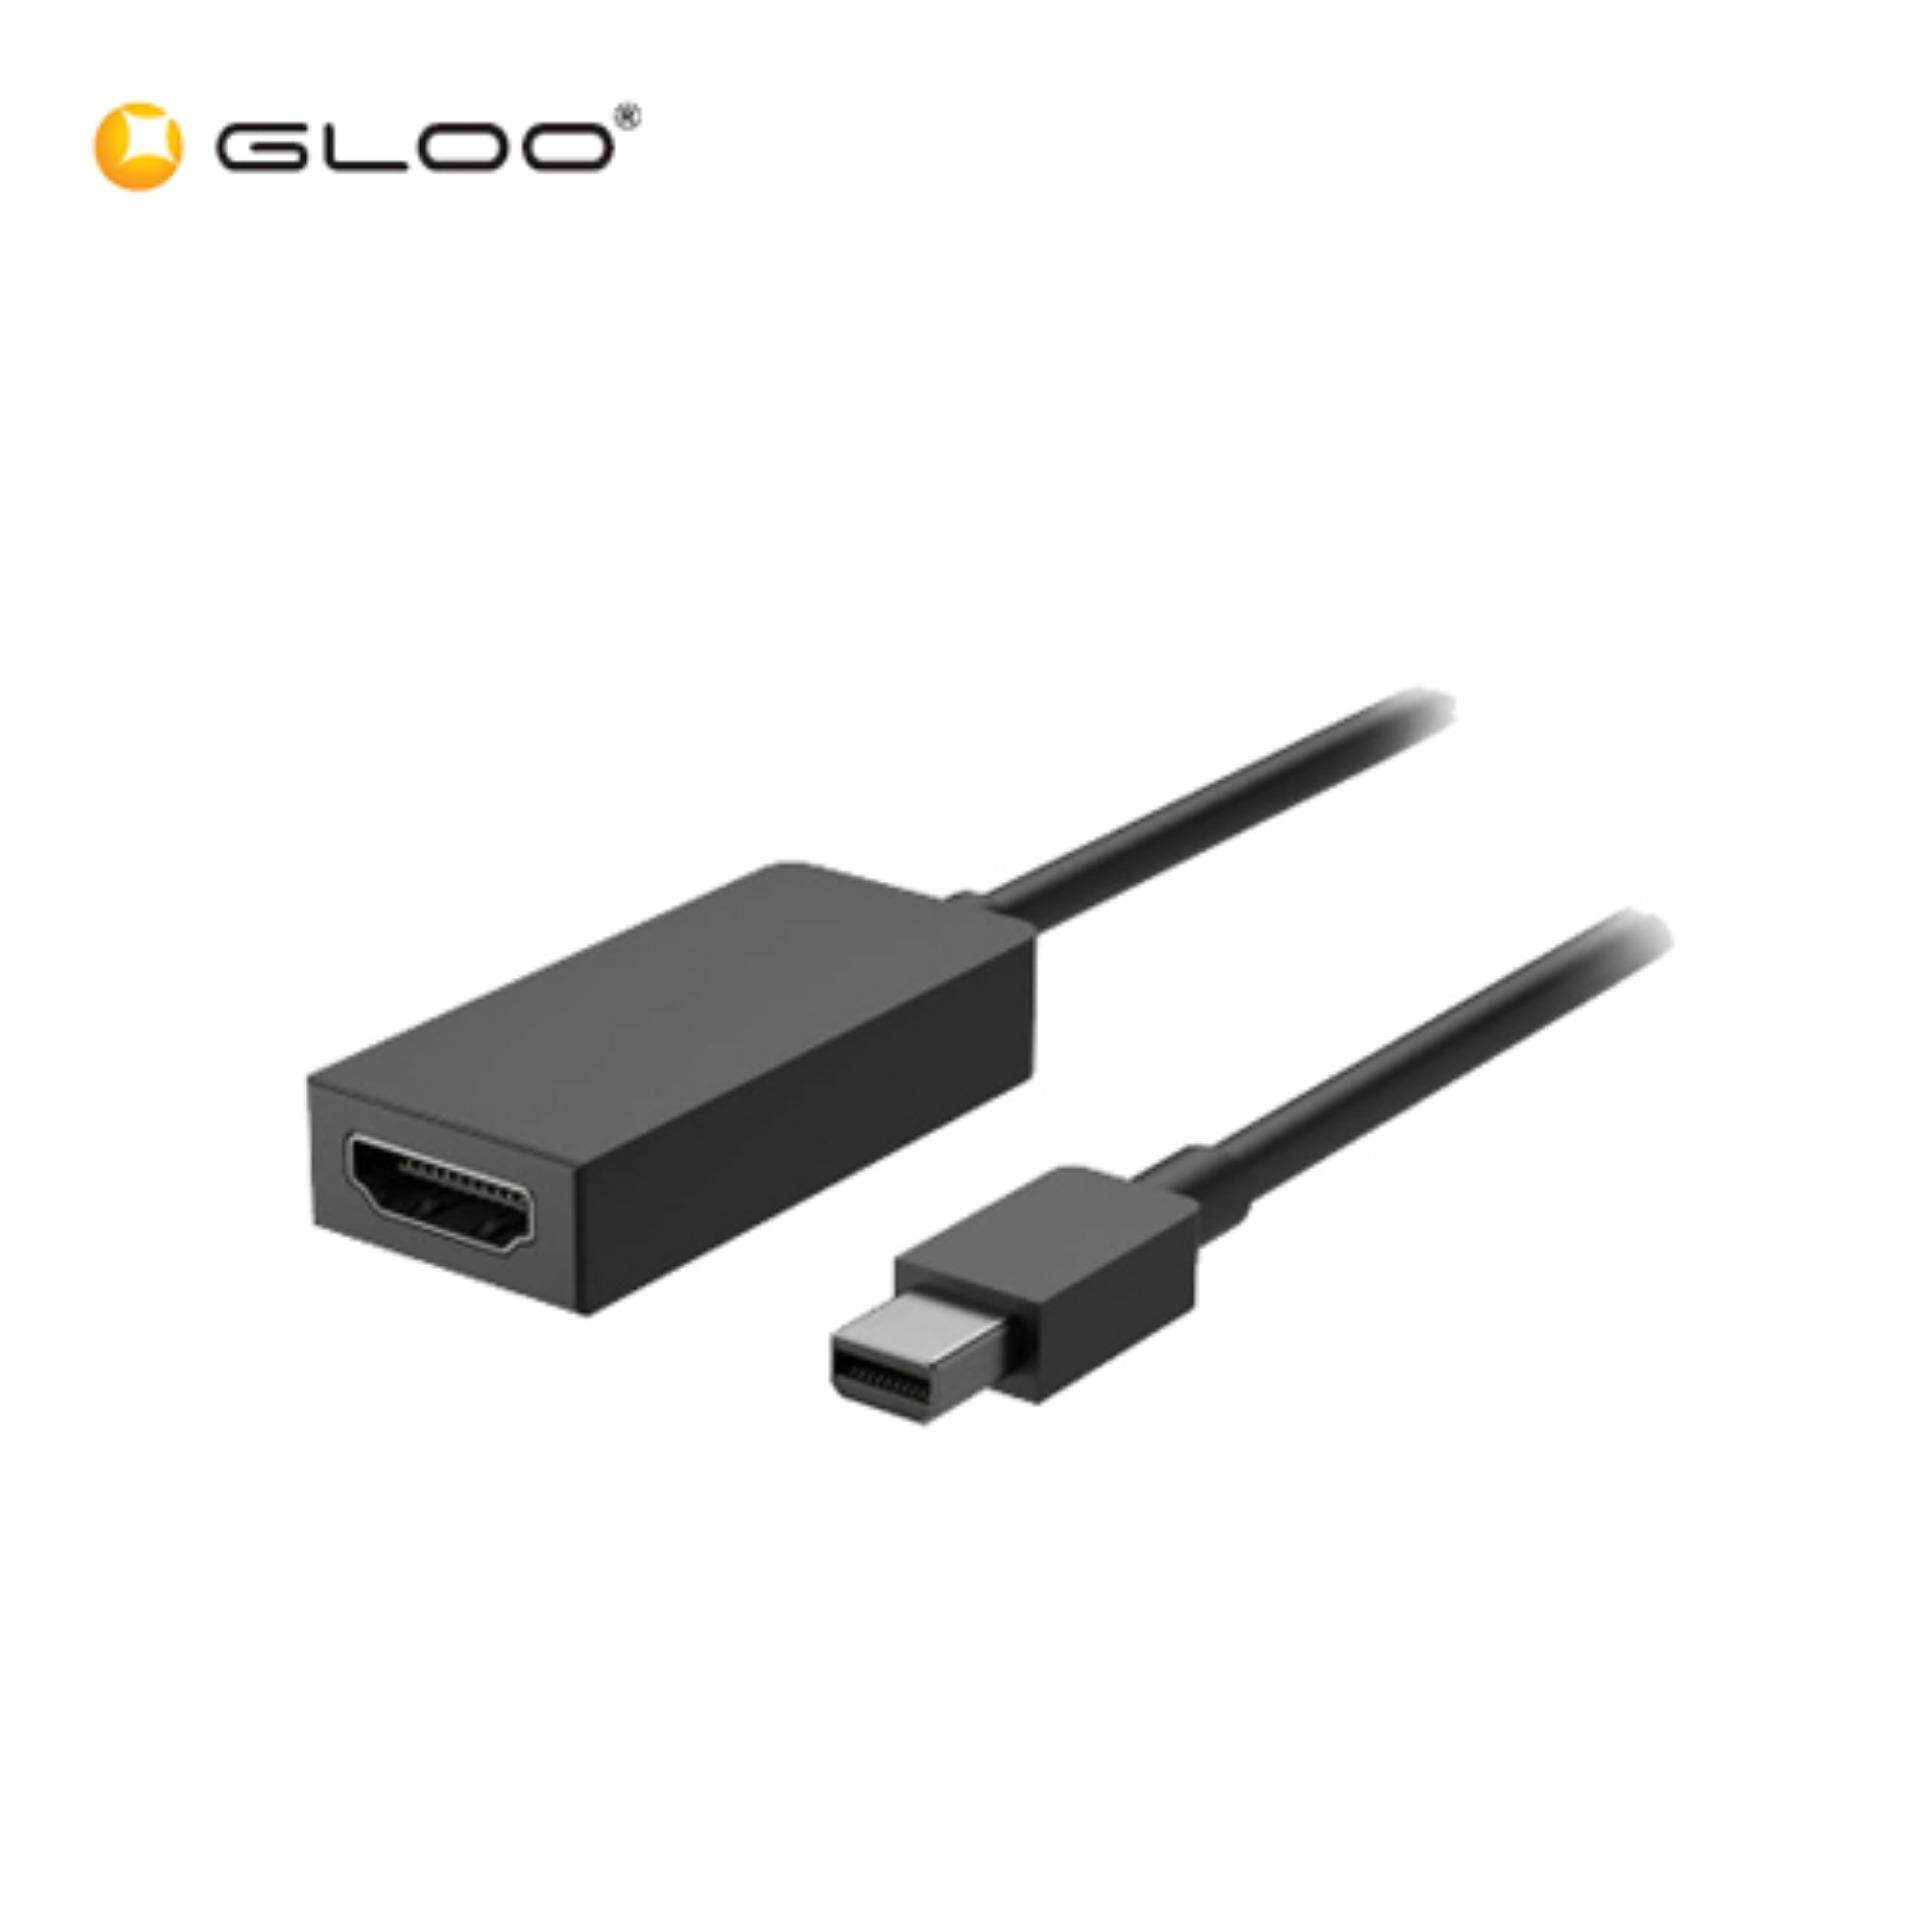 Microsoft HDMI Adapter (Win10/8.1) - Black